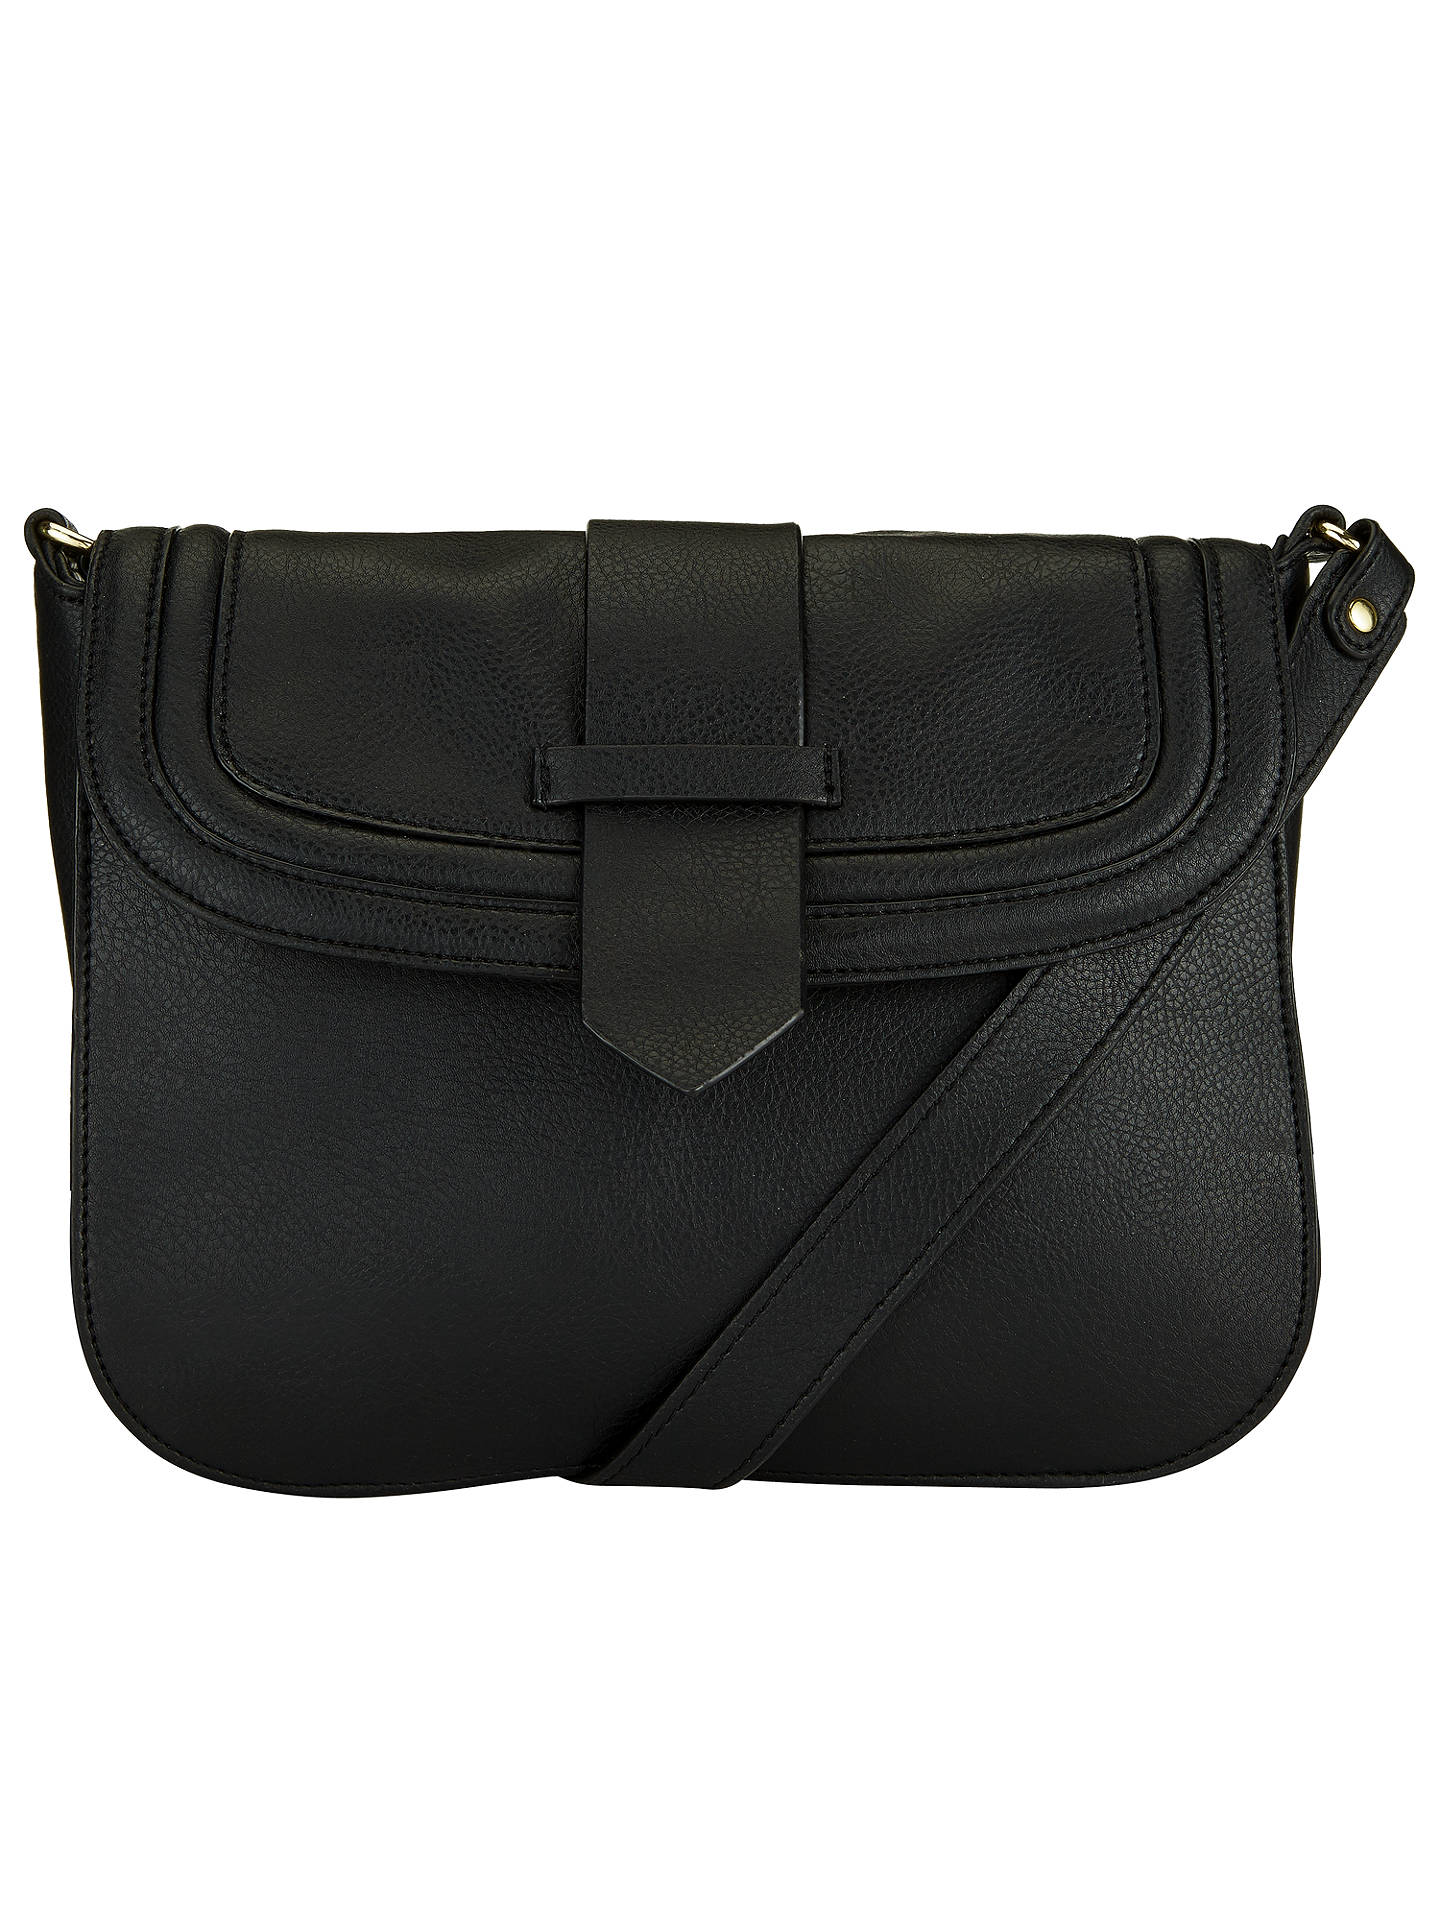 4733da8fc4 Buy John Lewis Daria Crossbody Bag, Black Online at johnlewis.com ...